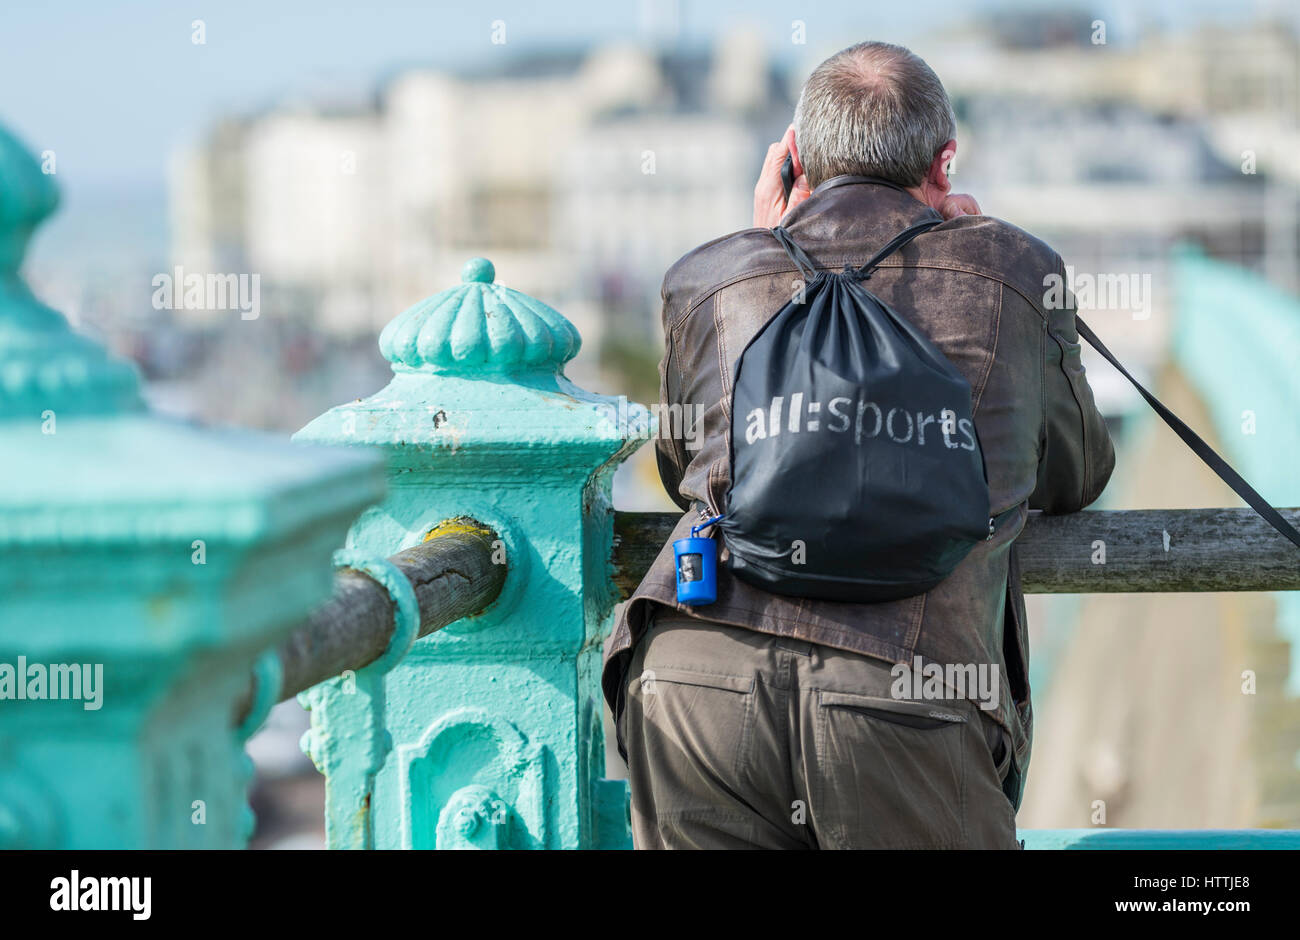 Man standing over railings while speaking on his phone. - Stock Image